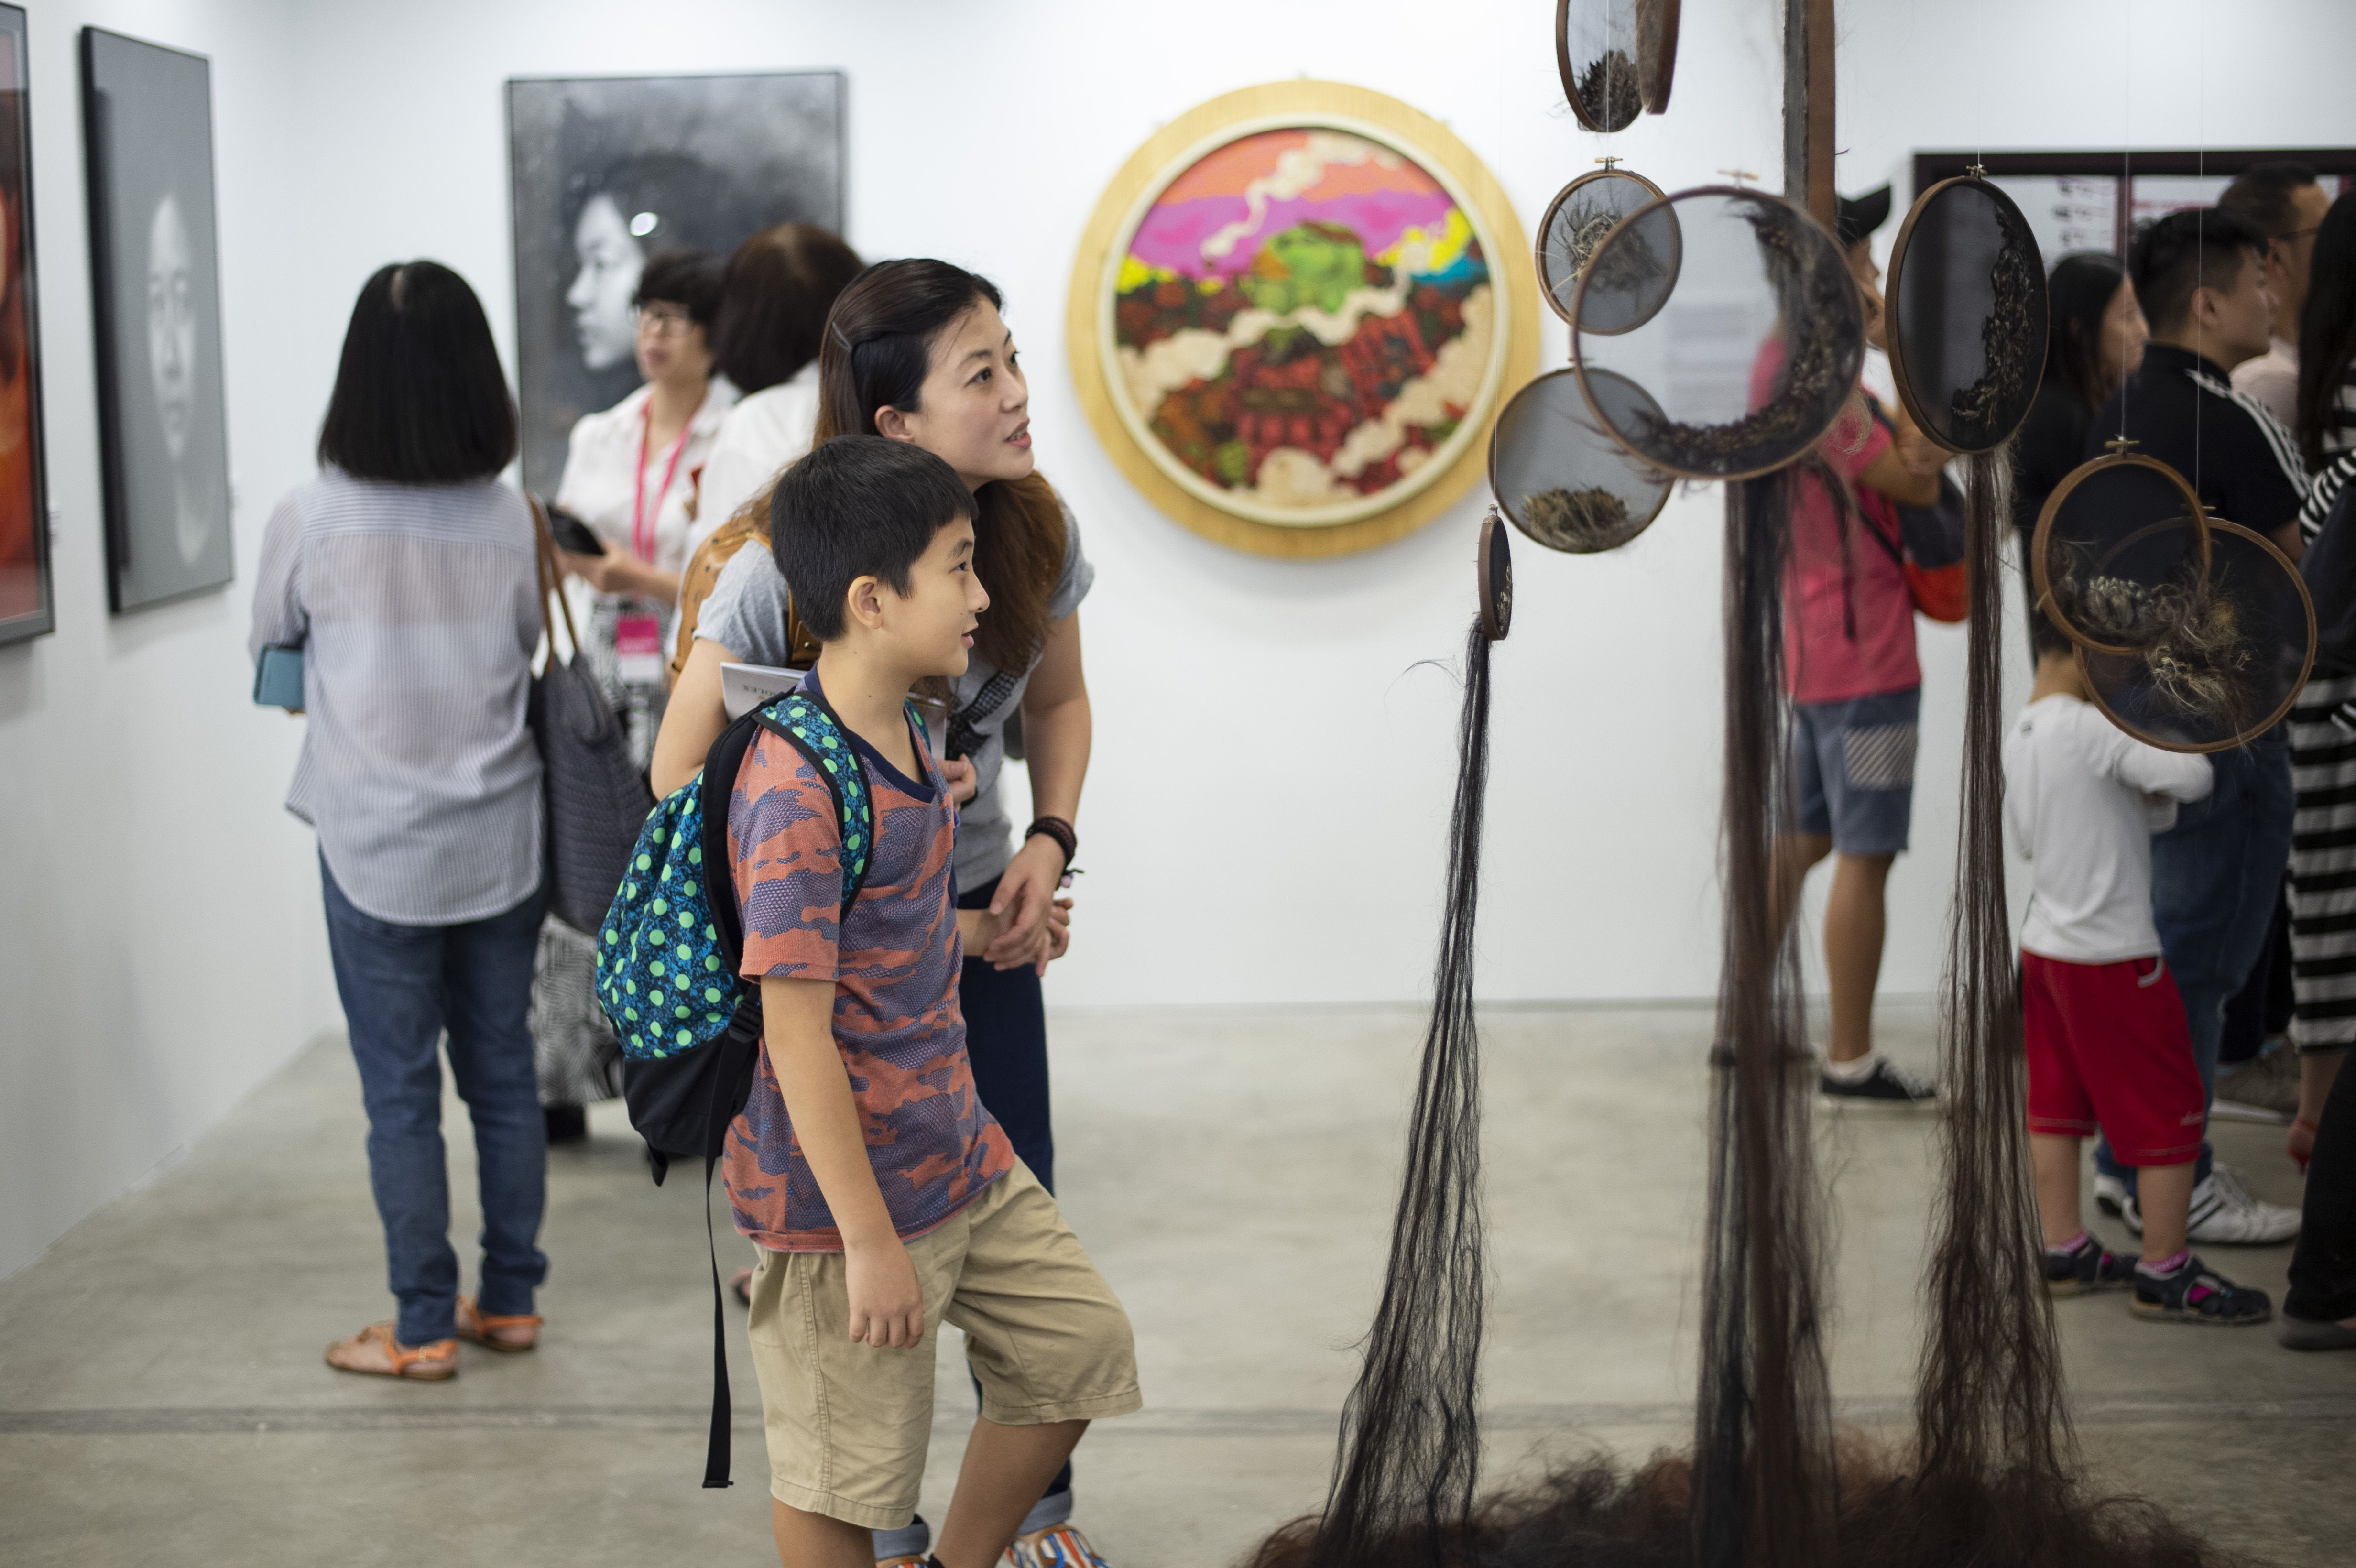 Affordable Art Fair Singapore 2018 Affordableartfair Affordableartfairsingapore Aafsingapore Bringyourhom Singapore Art Art Fair Arts And Crafts Furniture